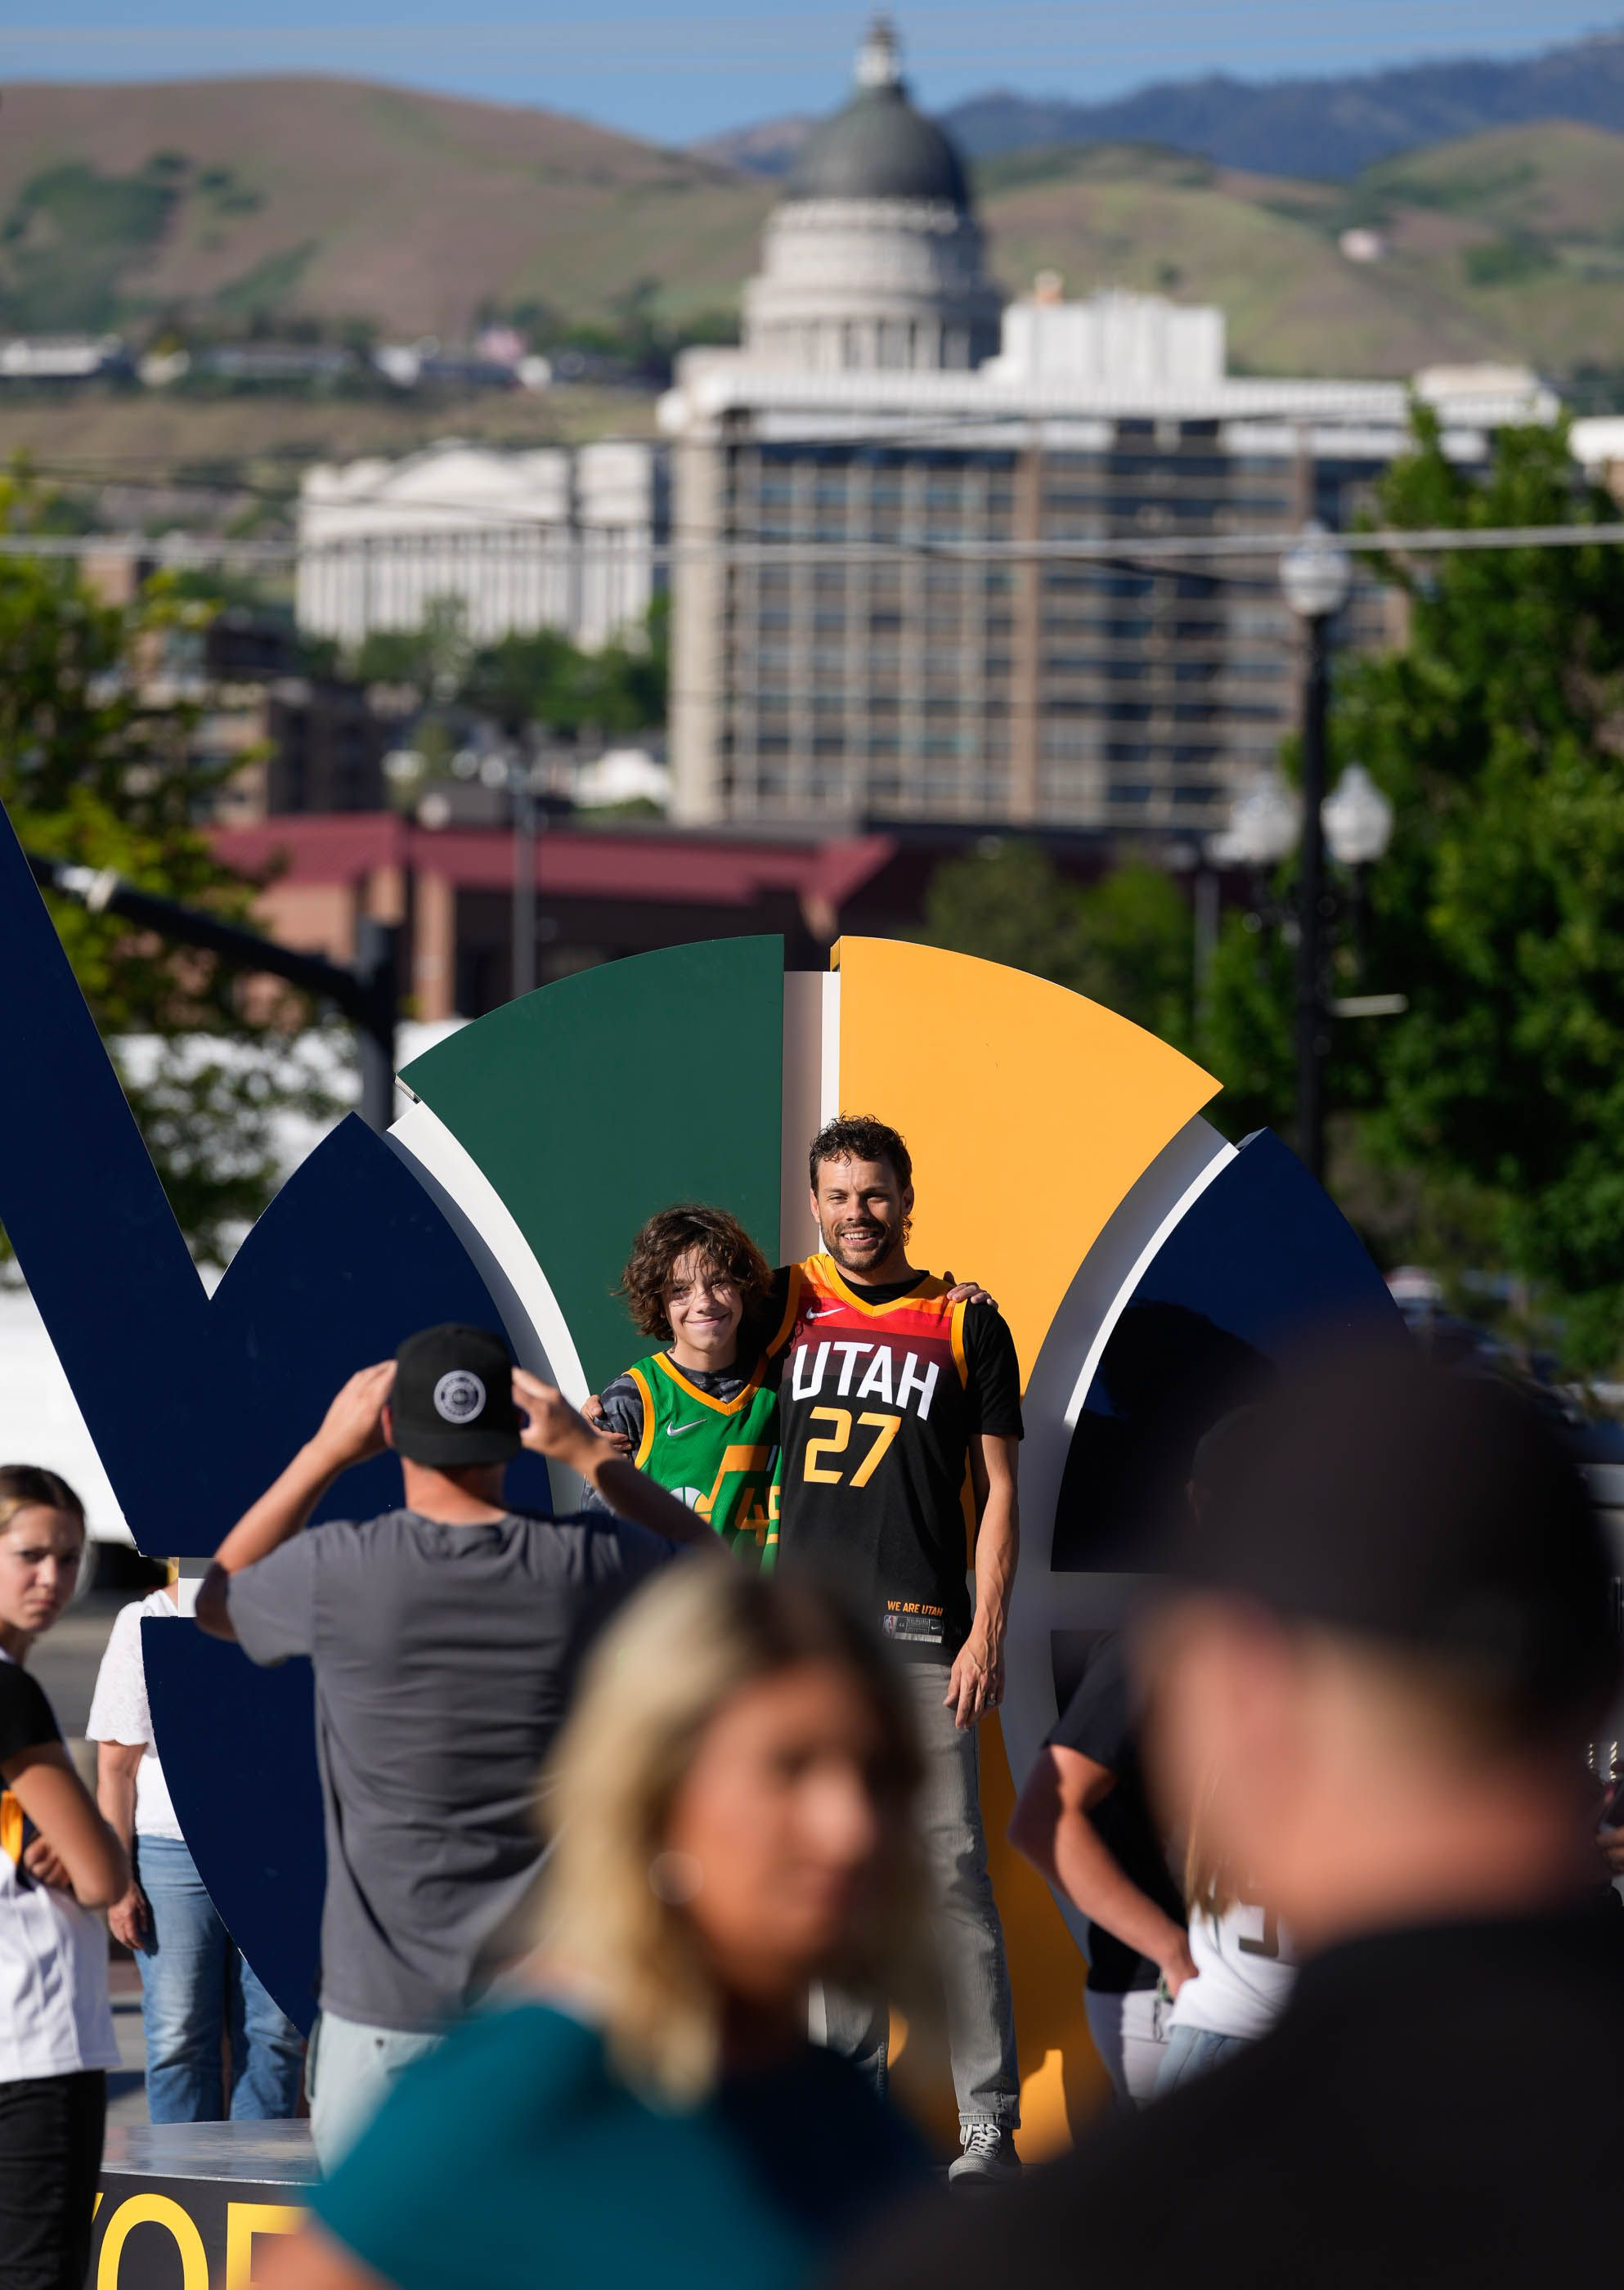 (Francisco Kjolseth | The Salt Lake Tribune) Fans pose for photos before the start of Game 5 against the Memphis Grizzlies of an NBA basketball first-round playoff series Wednesday, June 2, 2021, in Salt Lake City, UT.